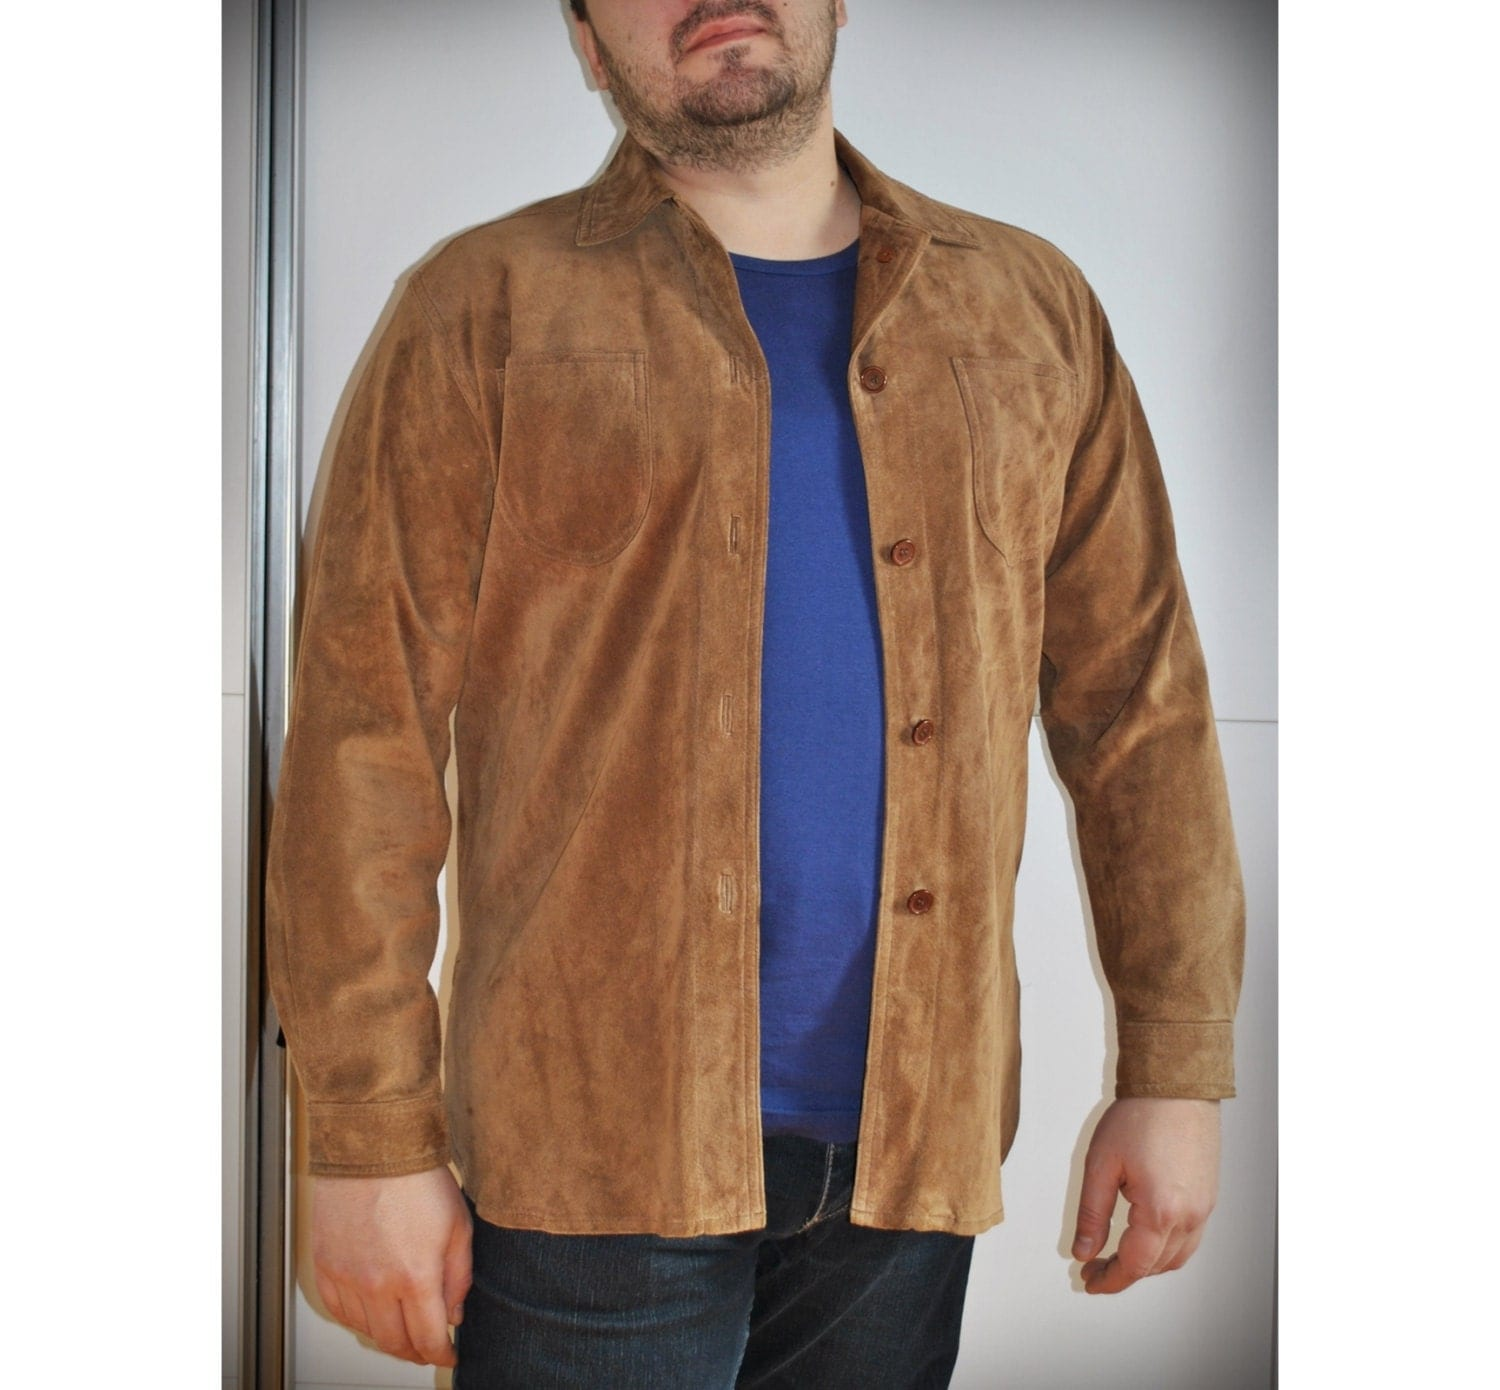 Vintage Men Suede Leather Shirt Long Sleeve Shirt Jacket